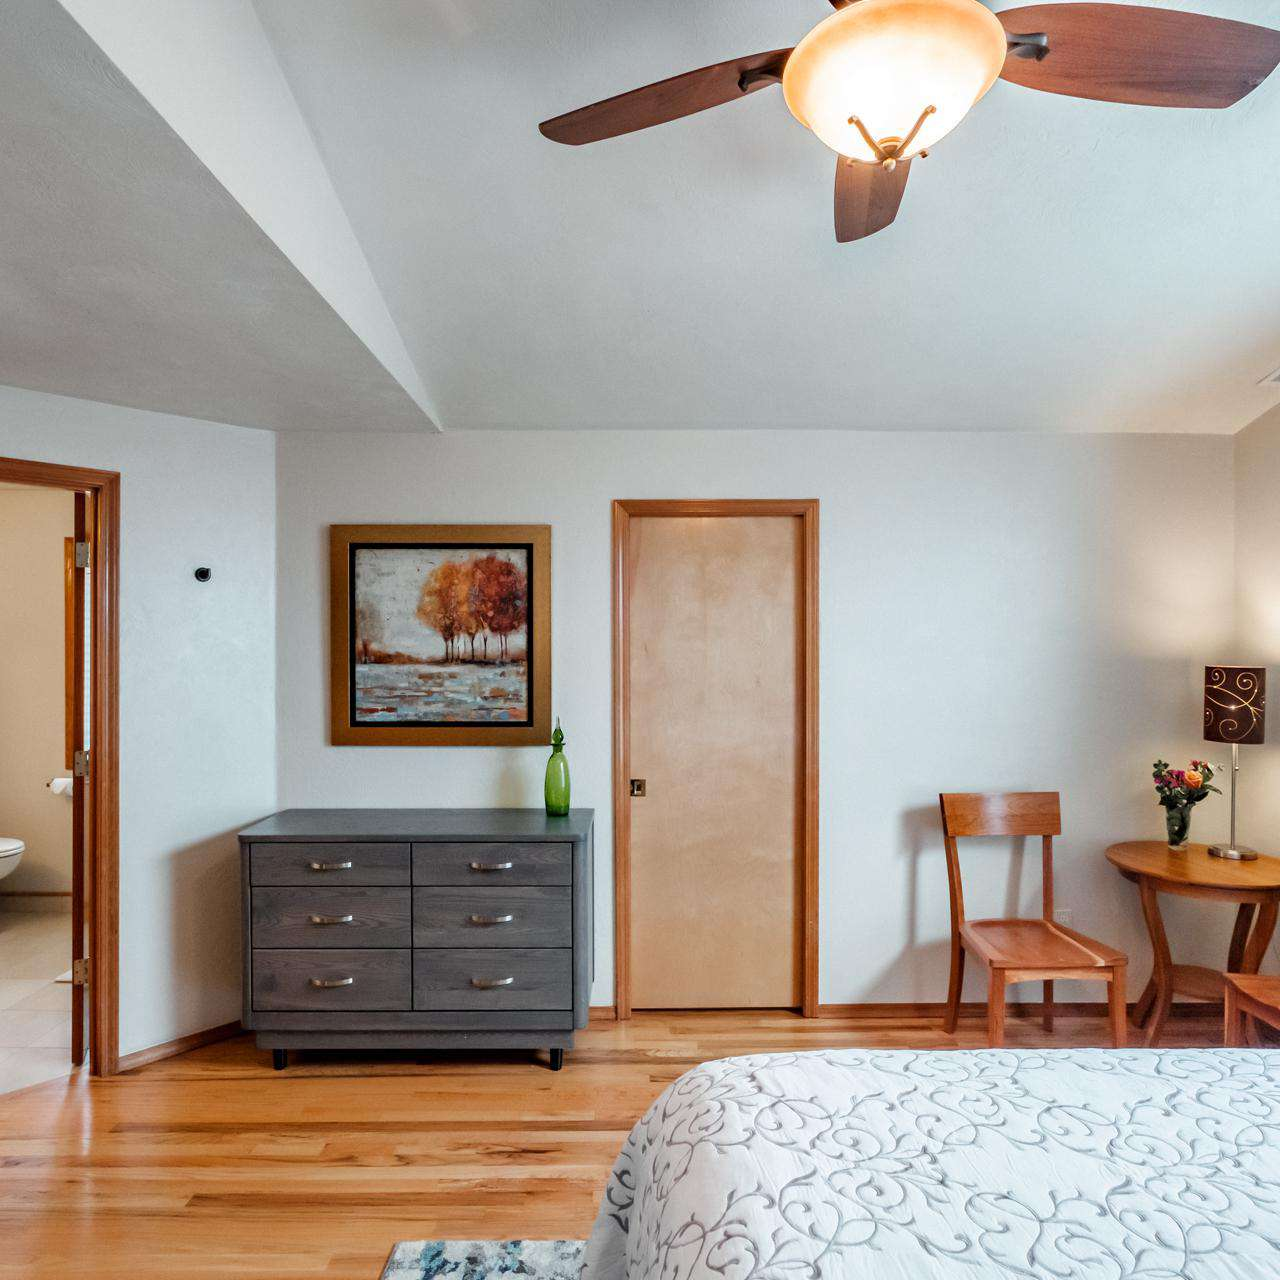 Wood floors throughout the home